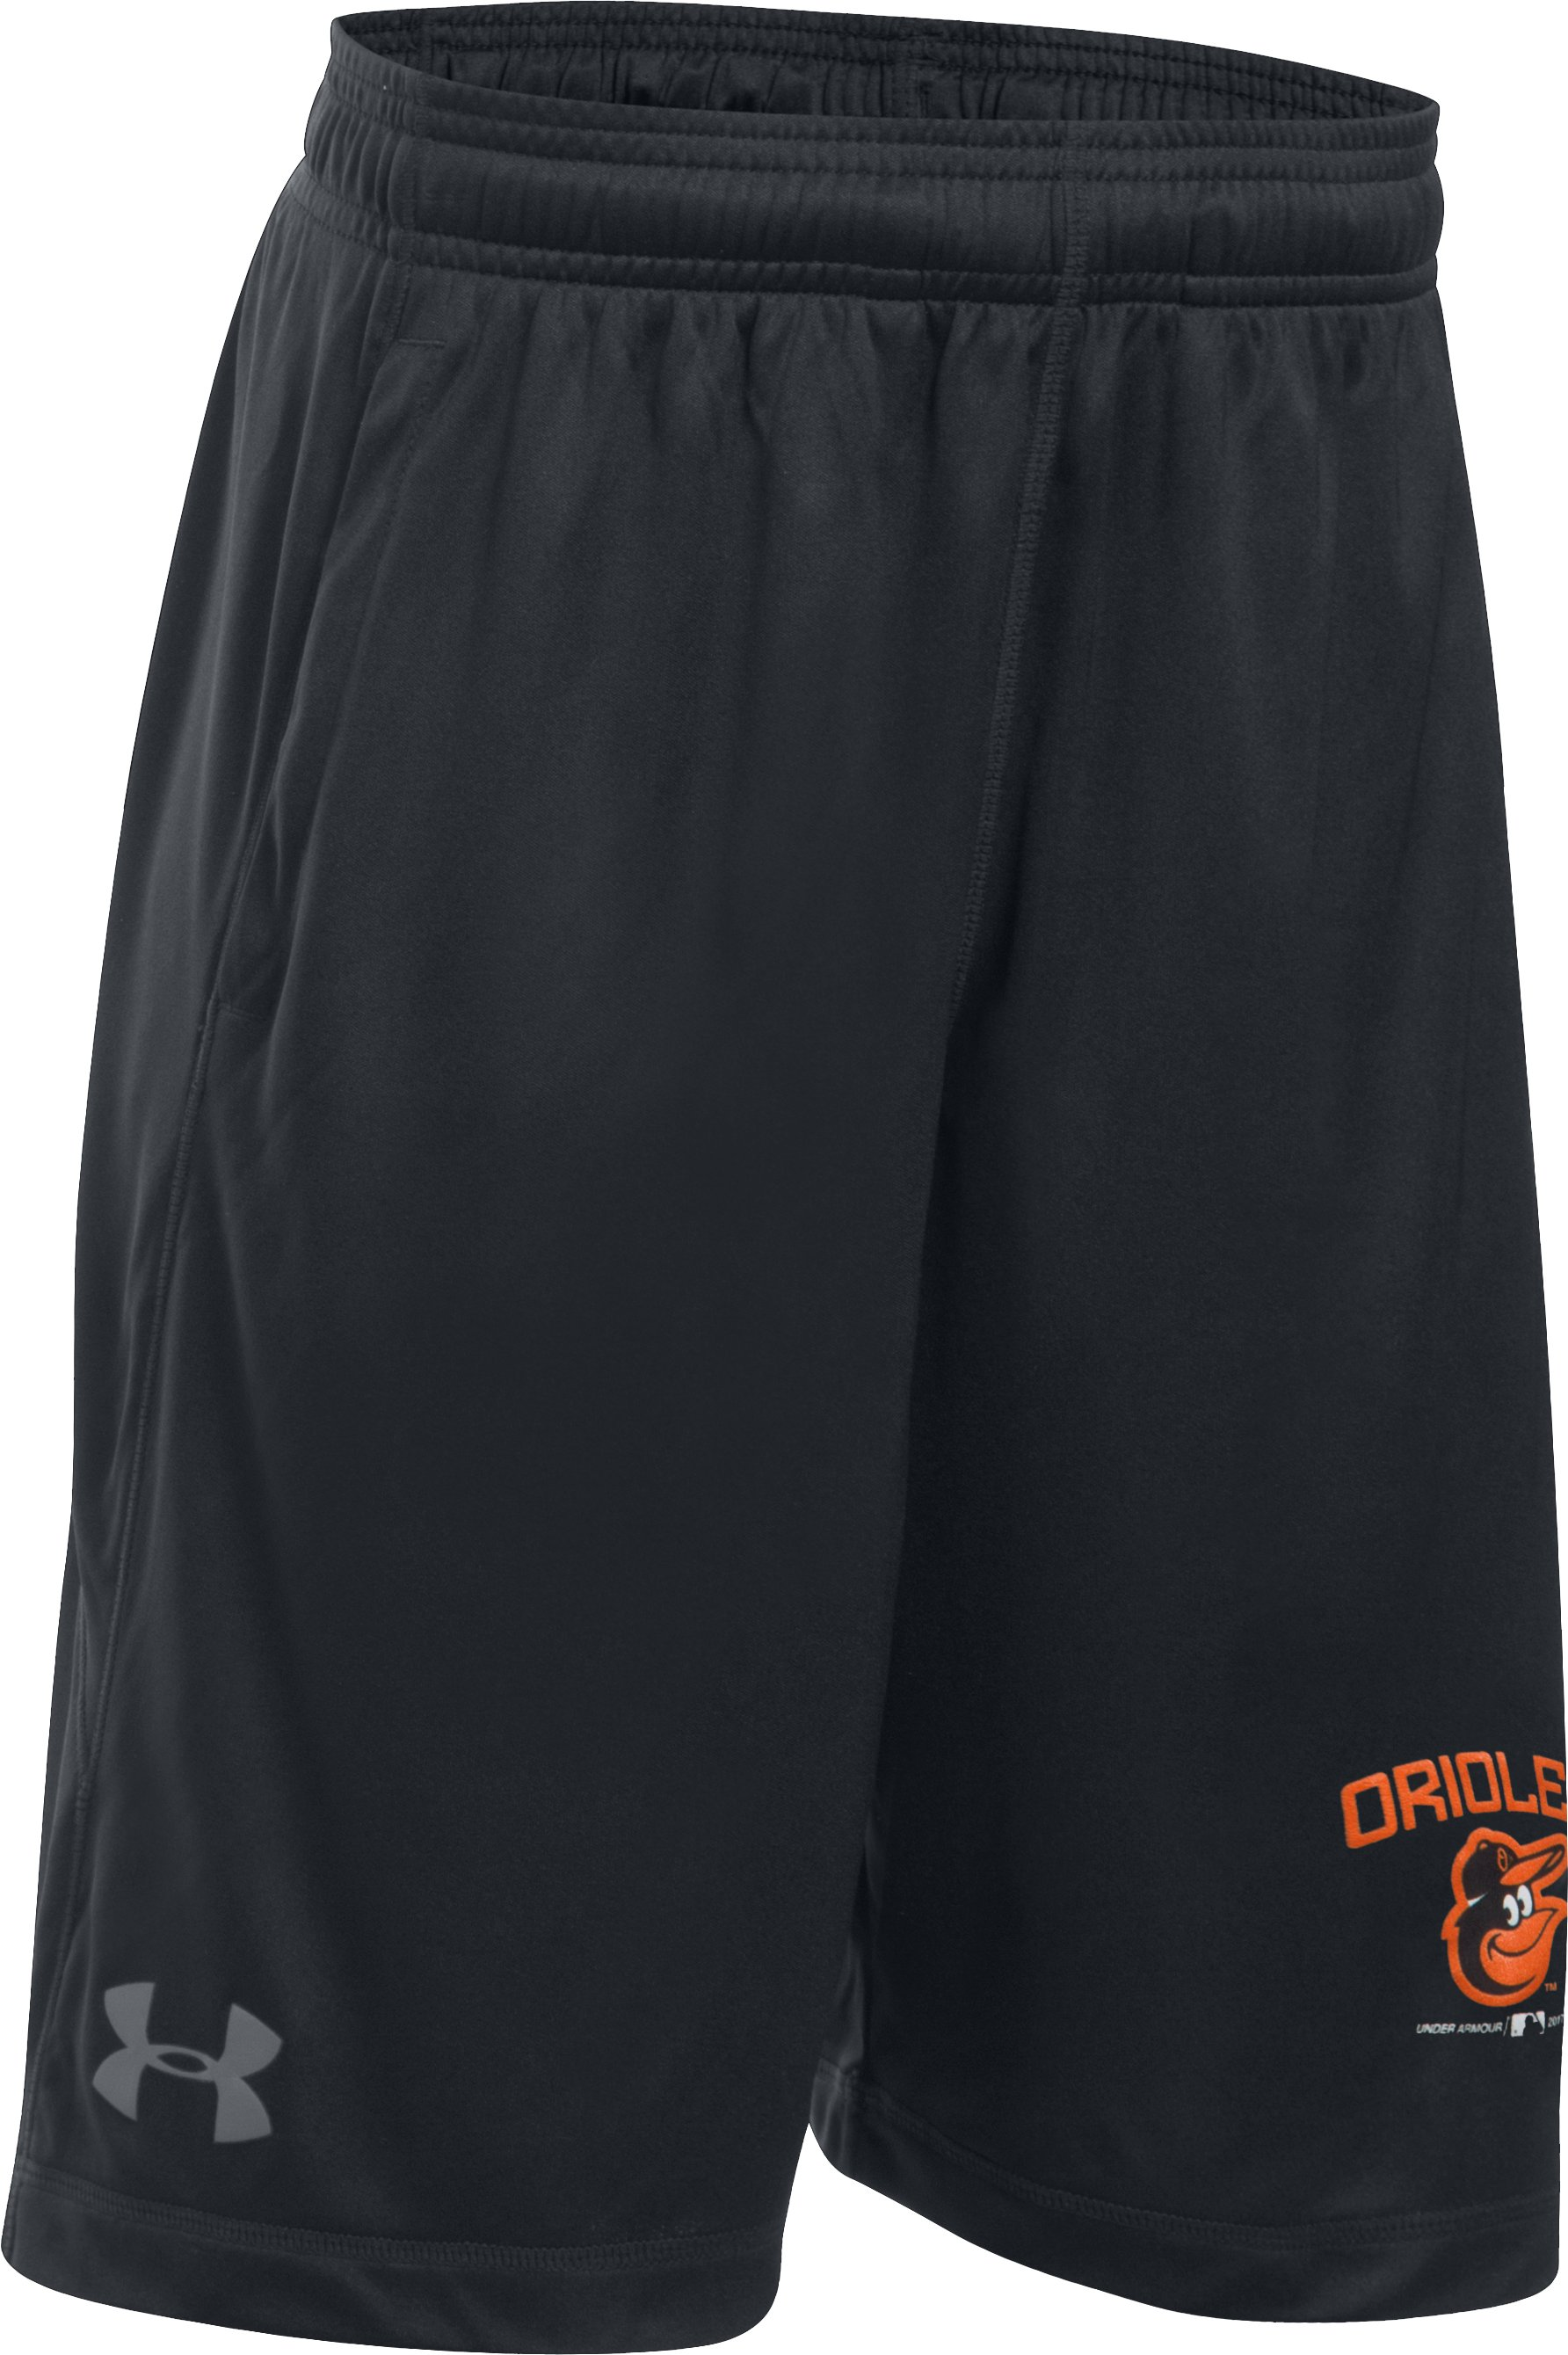 Boys' Orioles Training Shorts, Black , zoomed image